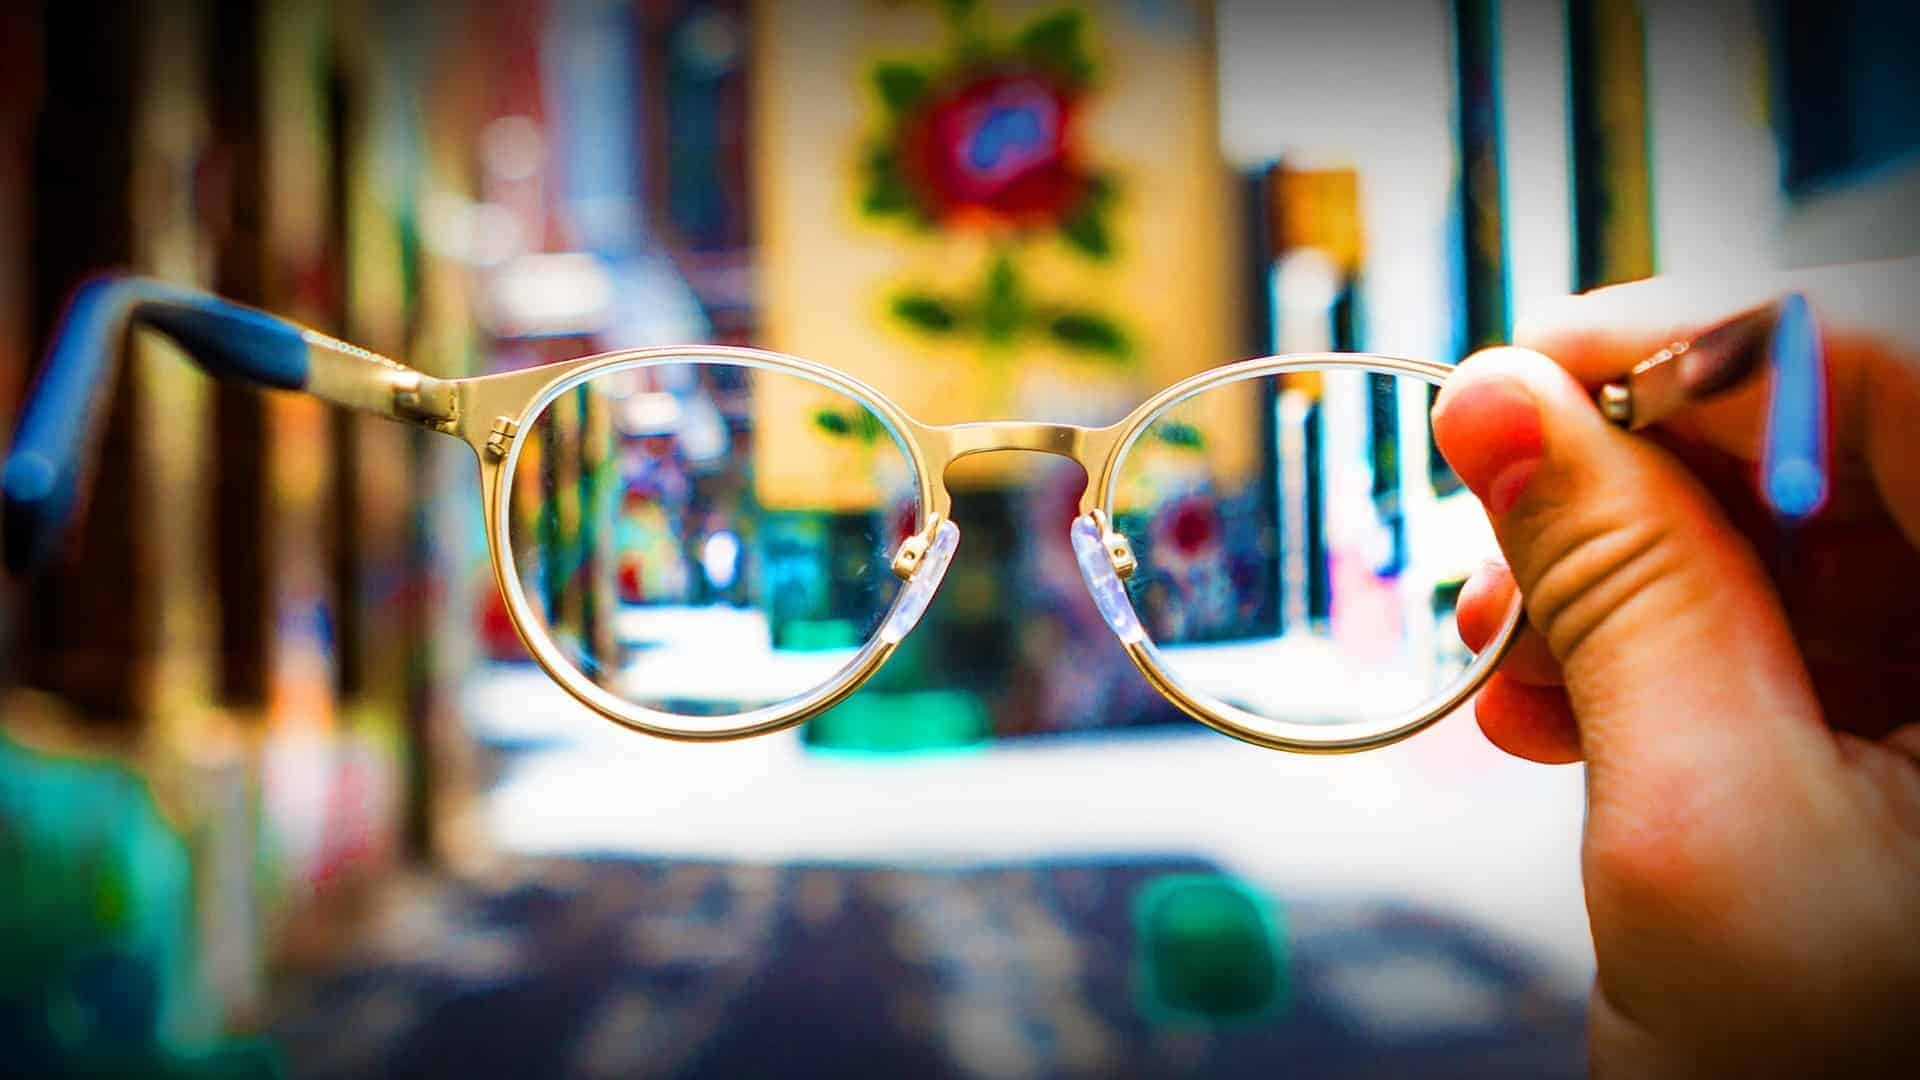 How to Heal Your Poor Eyesight in a Natural Way